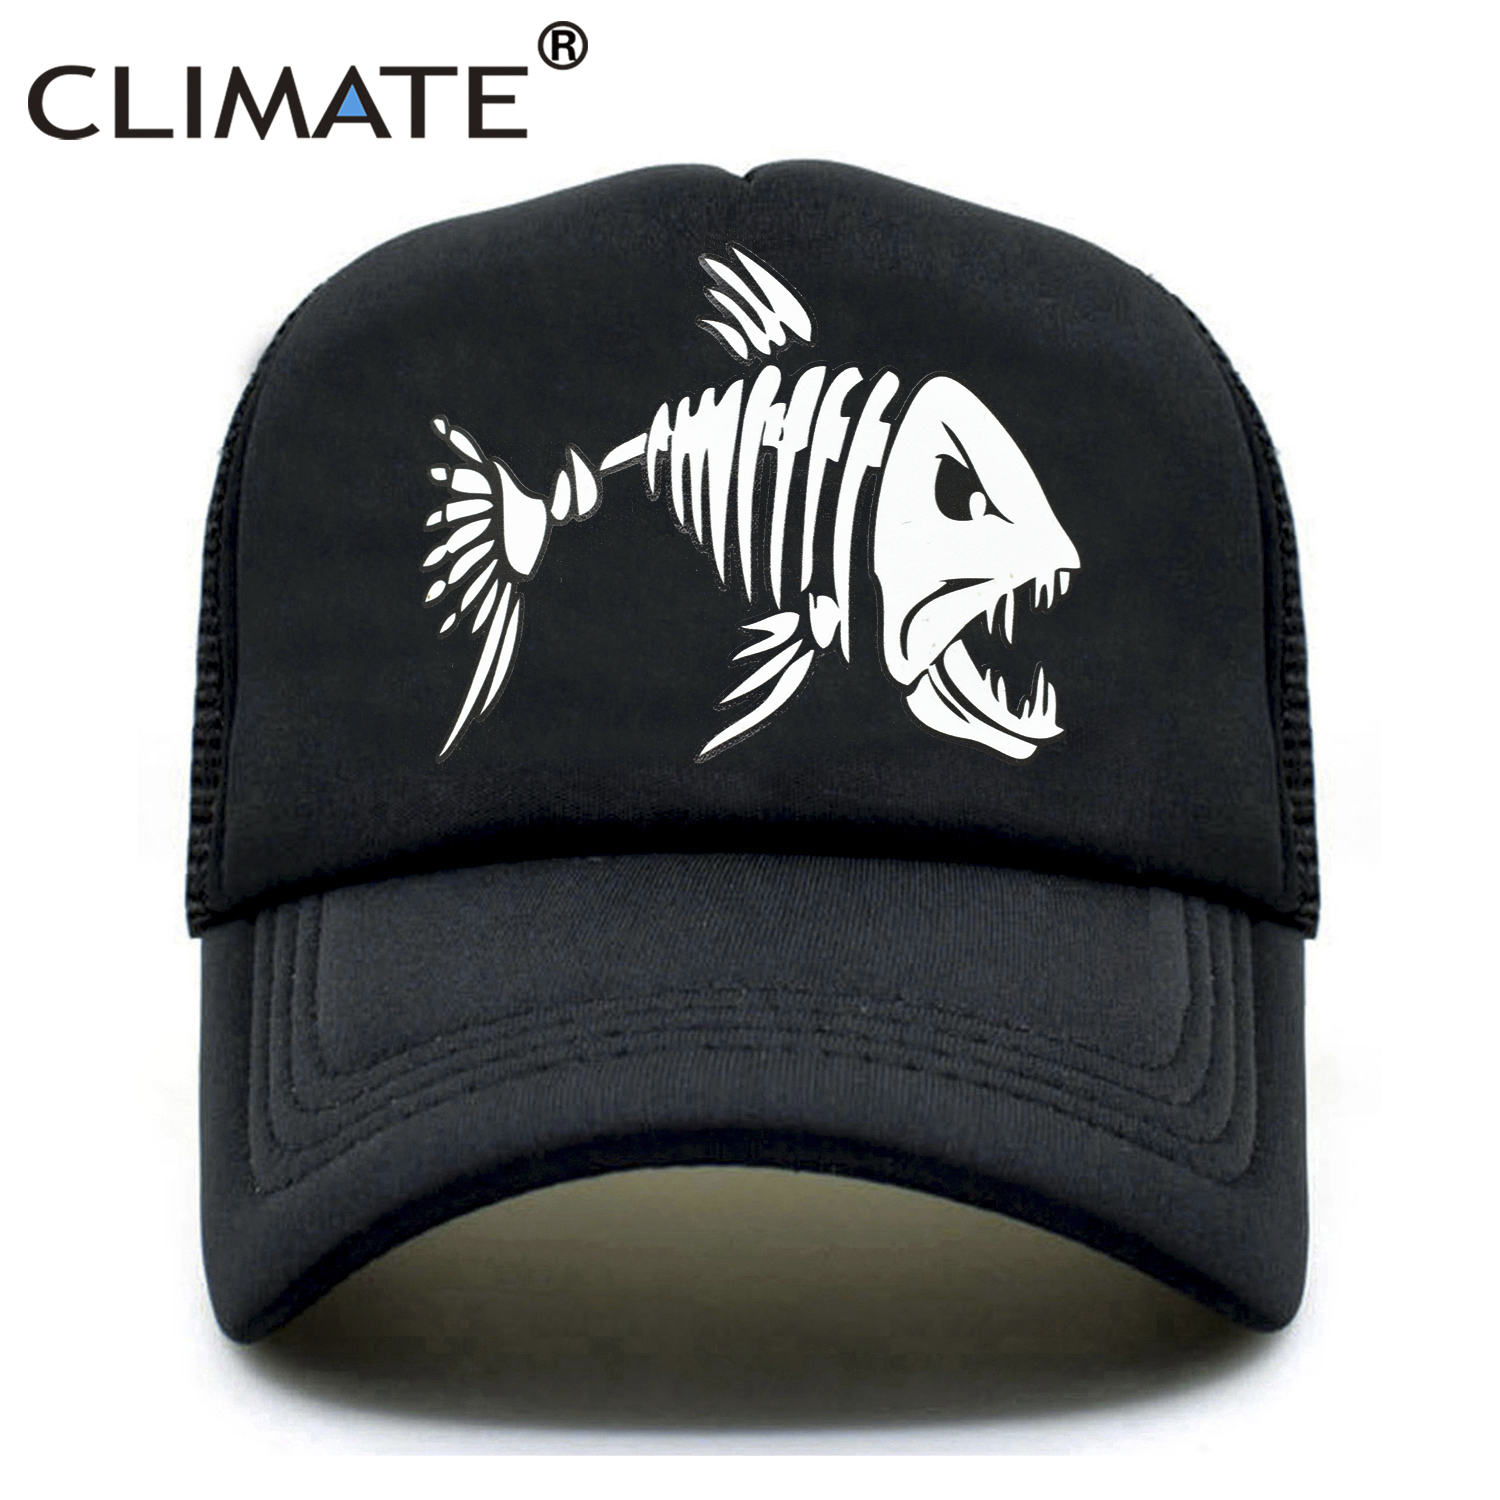 CLIMATE Men Fishbone Trucker   Cap   Fish Bone Fishing Hip Hop   Baseball     Caps   Summer Cool Men Youth Snapback Mesh   Cap   Hat For Men